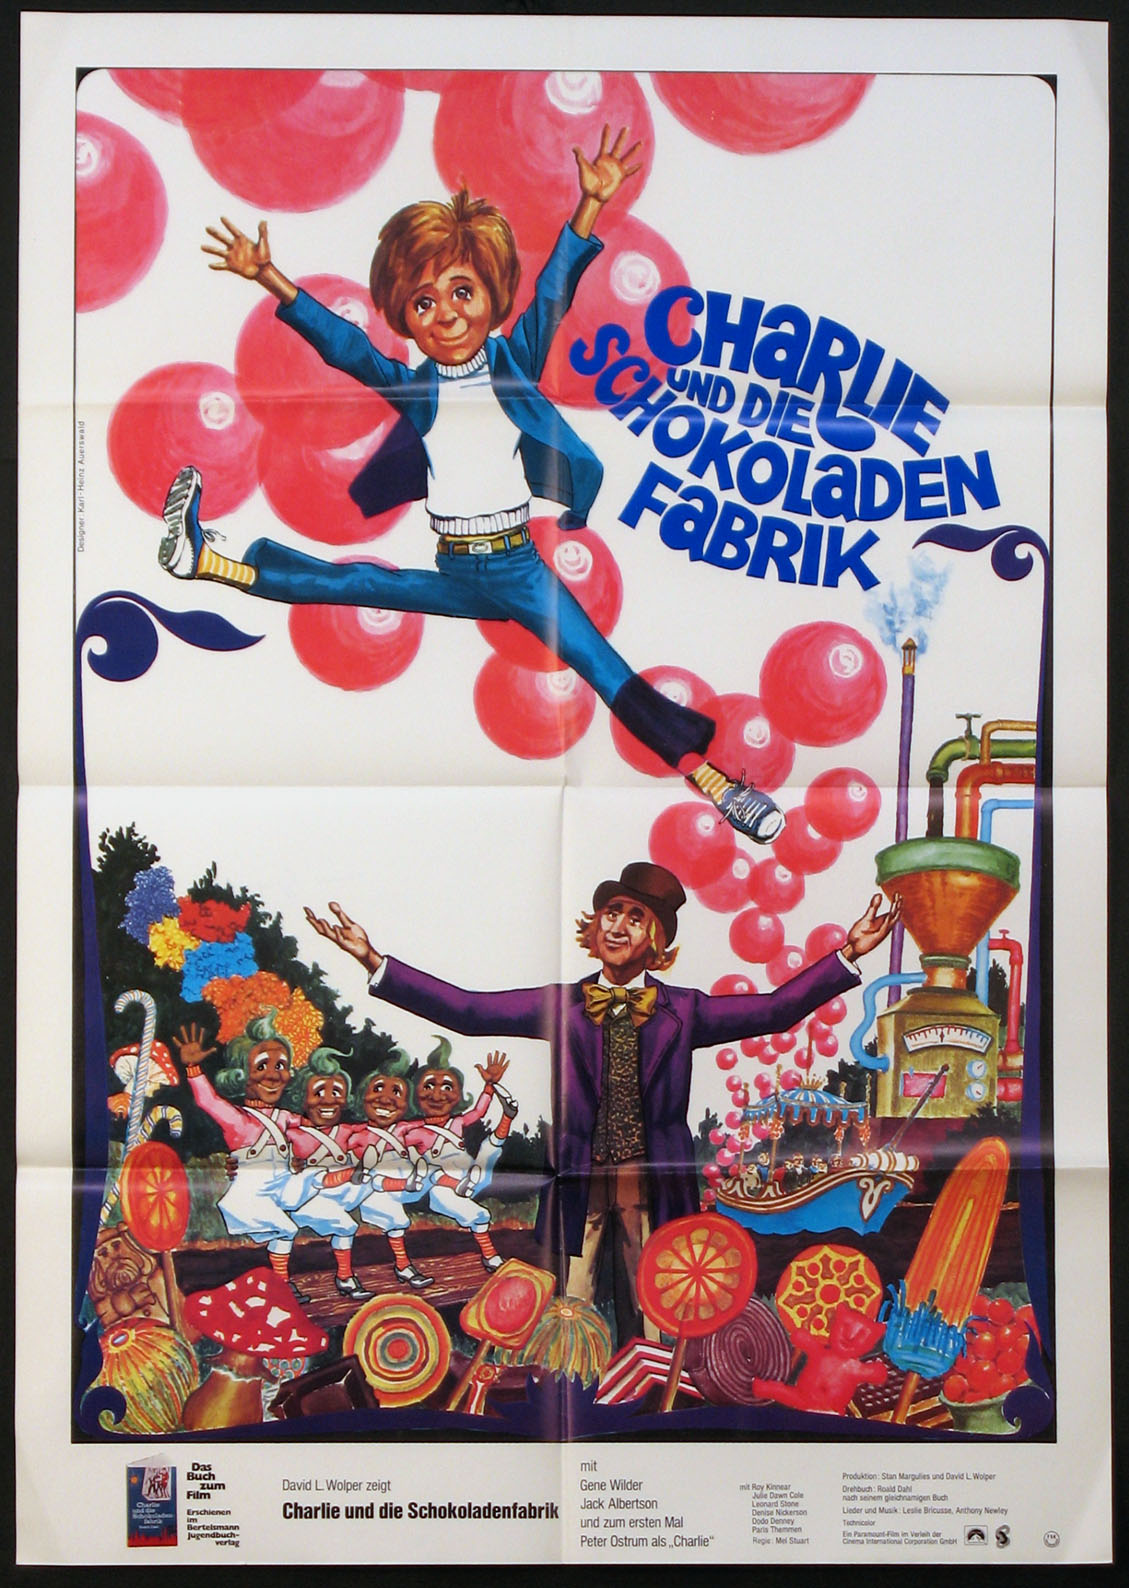 WILLY WONKA AND THE CHOCOLATE FACTORY (WILLY WONKA & THE CHOCOLATE FACTORY) @ FilmPosters.com